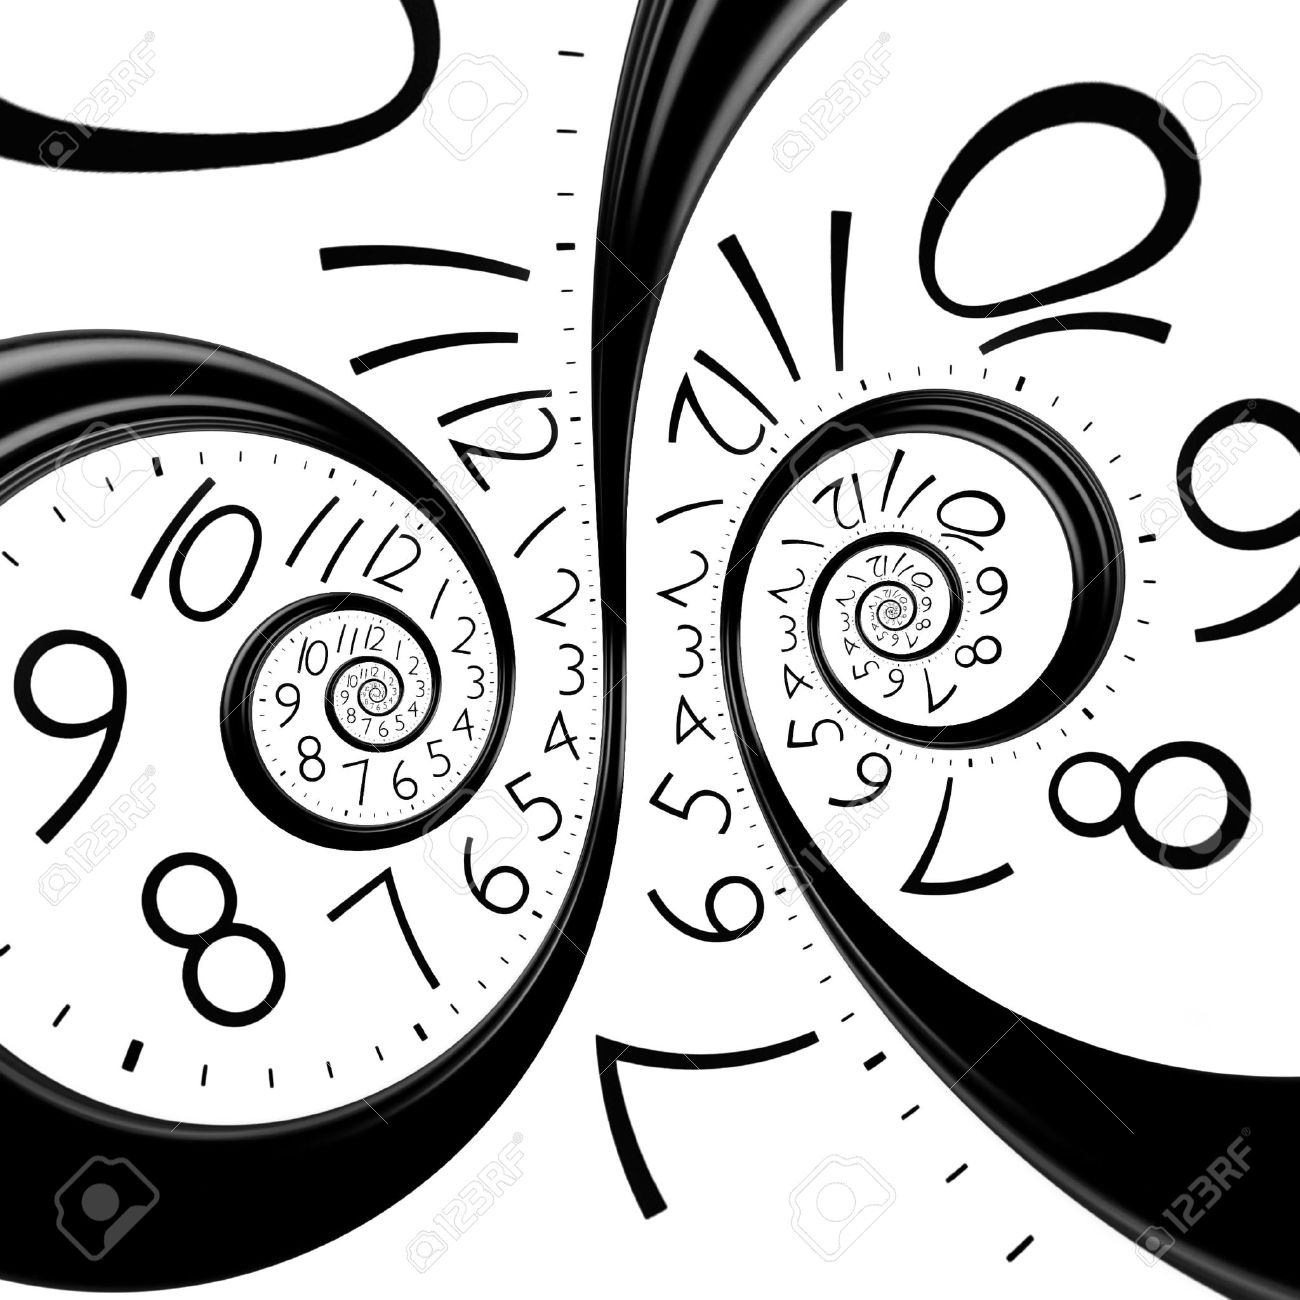 infinity time spiral clock, abstract background - 34788082